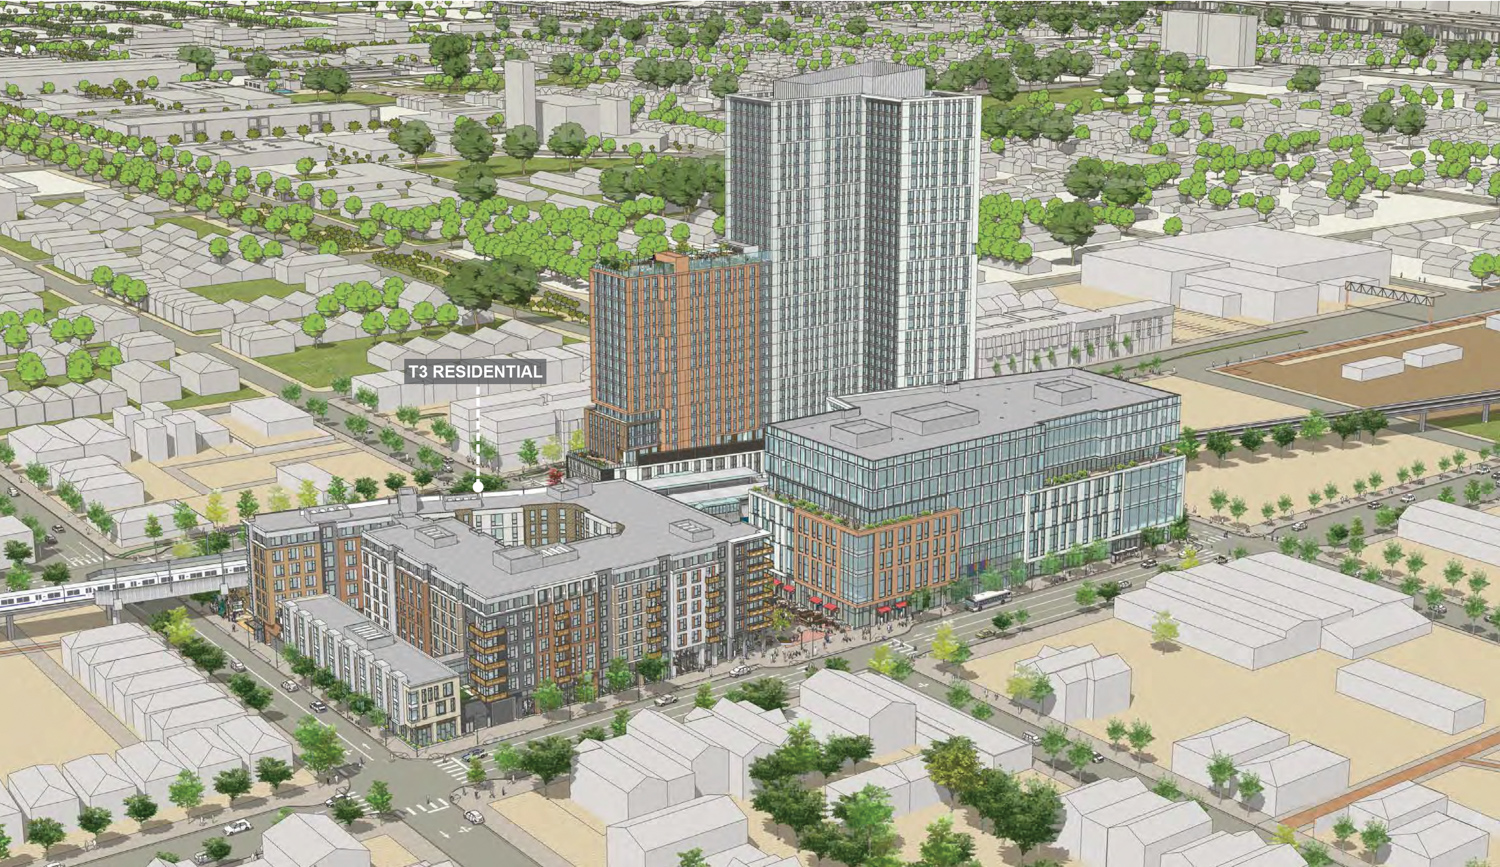 Southwest overview of 1451 7th Street Mandela Station with T3, the affordable housing structrue, labeled, rendering by JRDV Architects